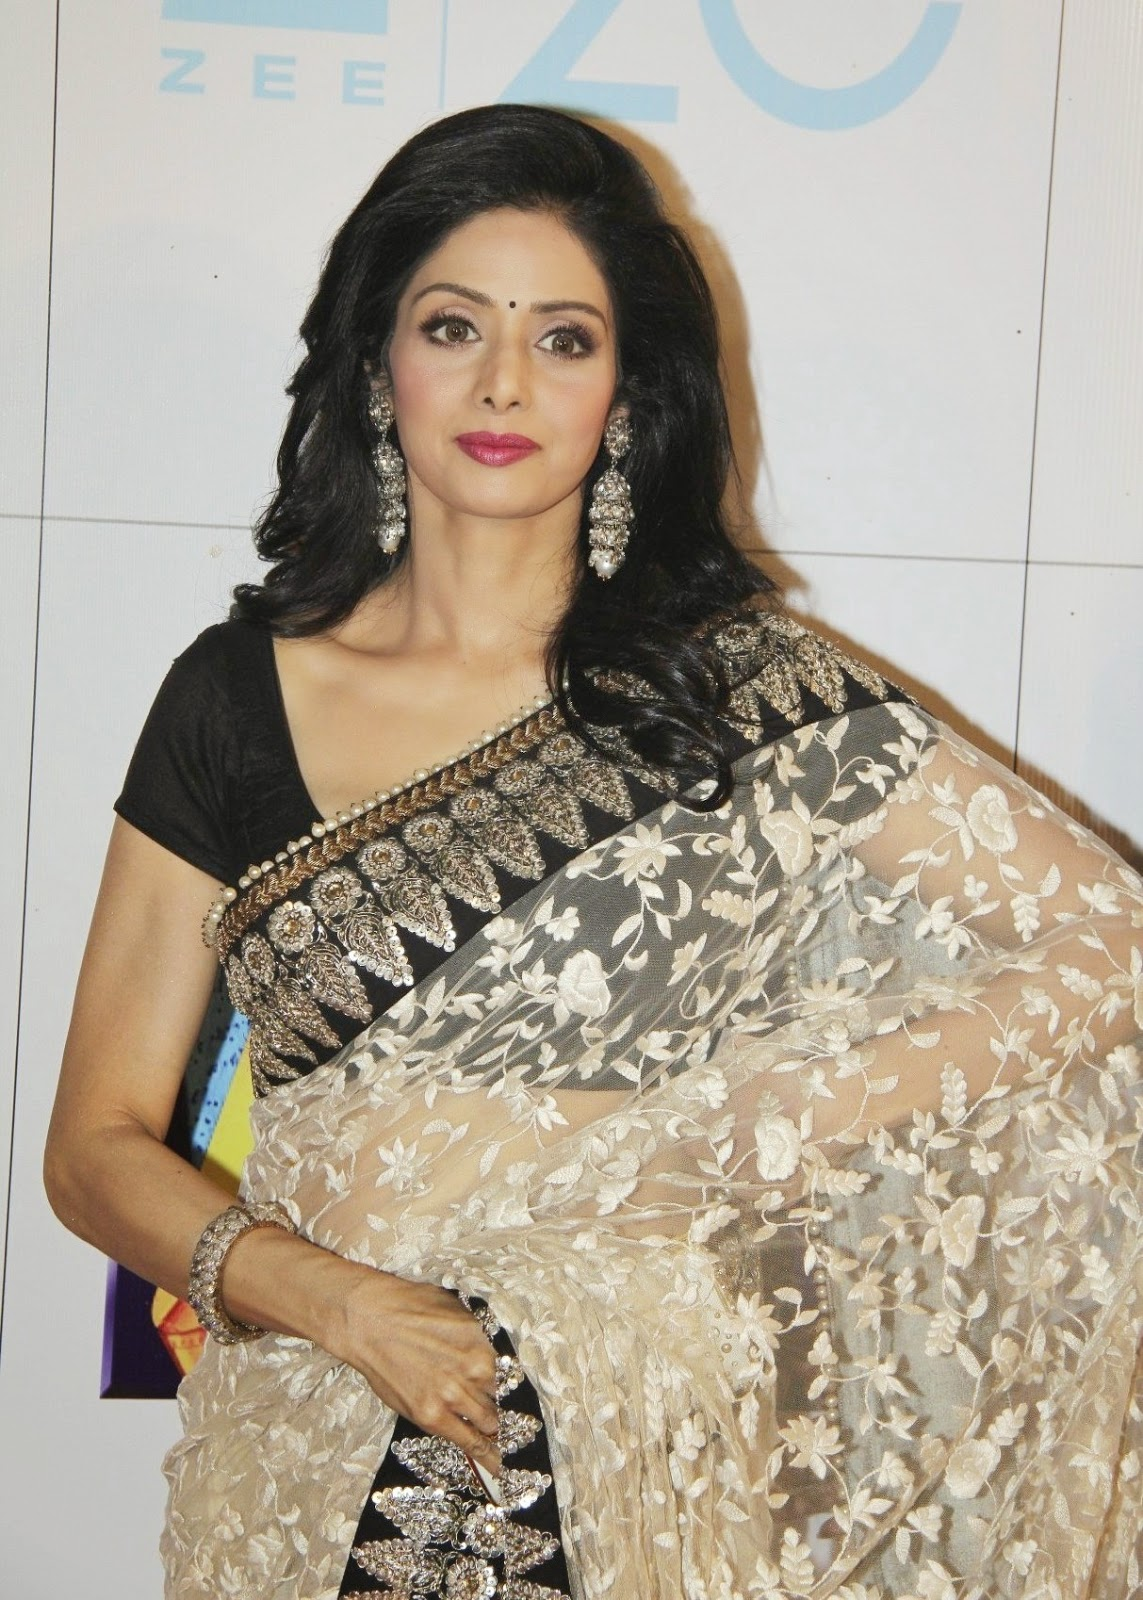 Remarkable Full naked photos sridevi pity, that